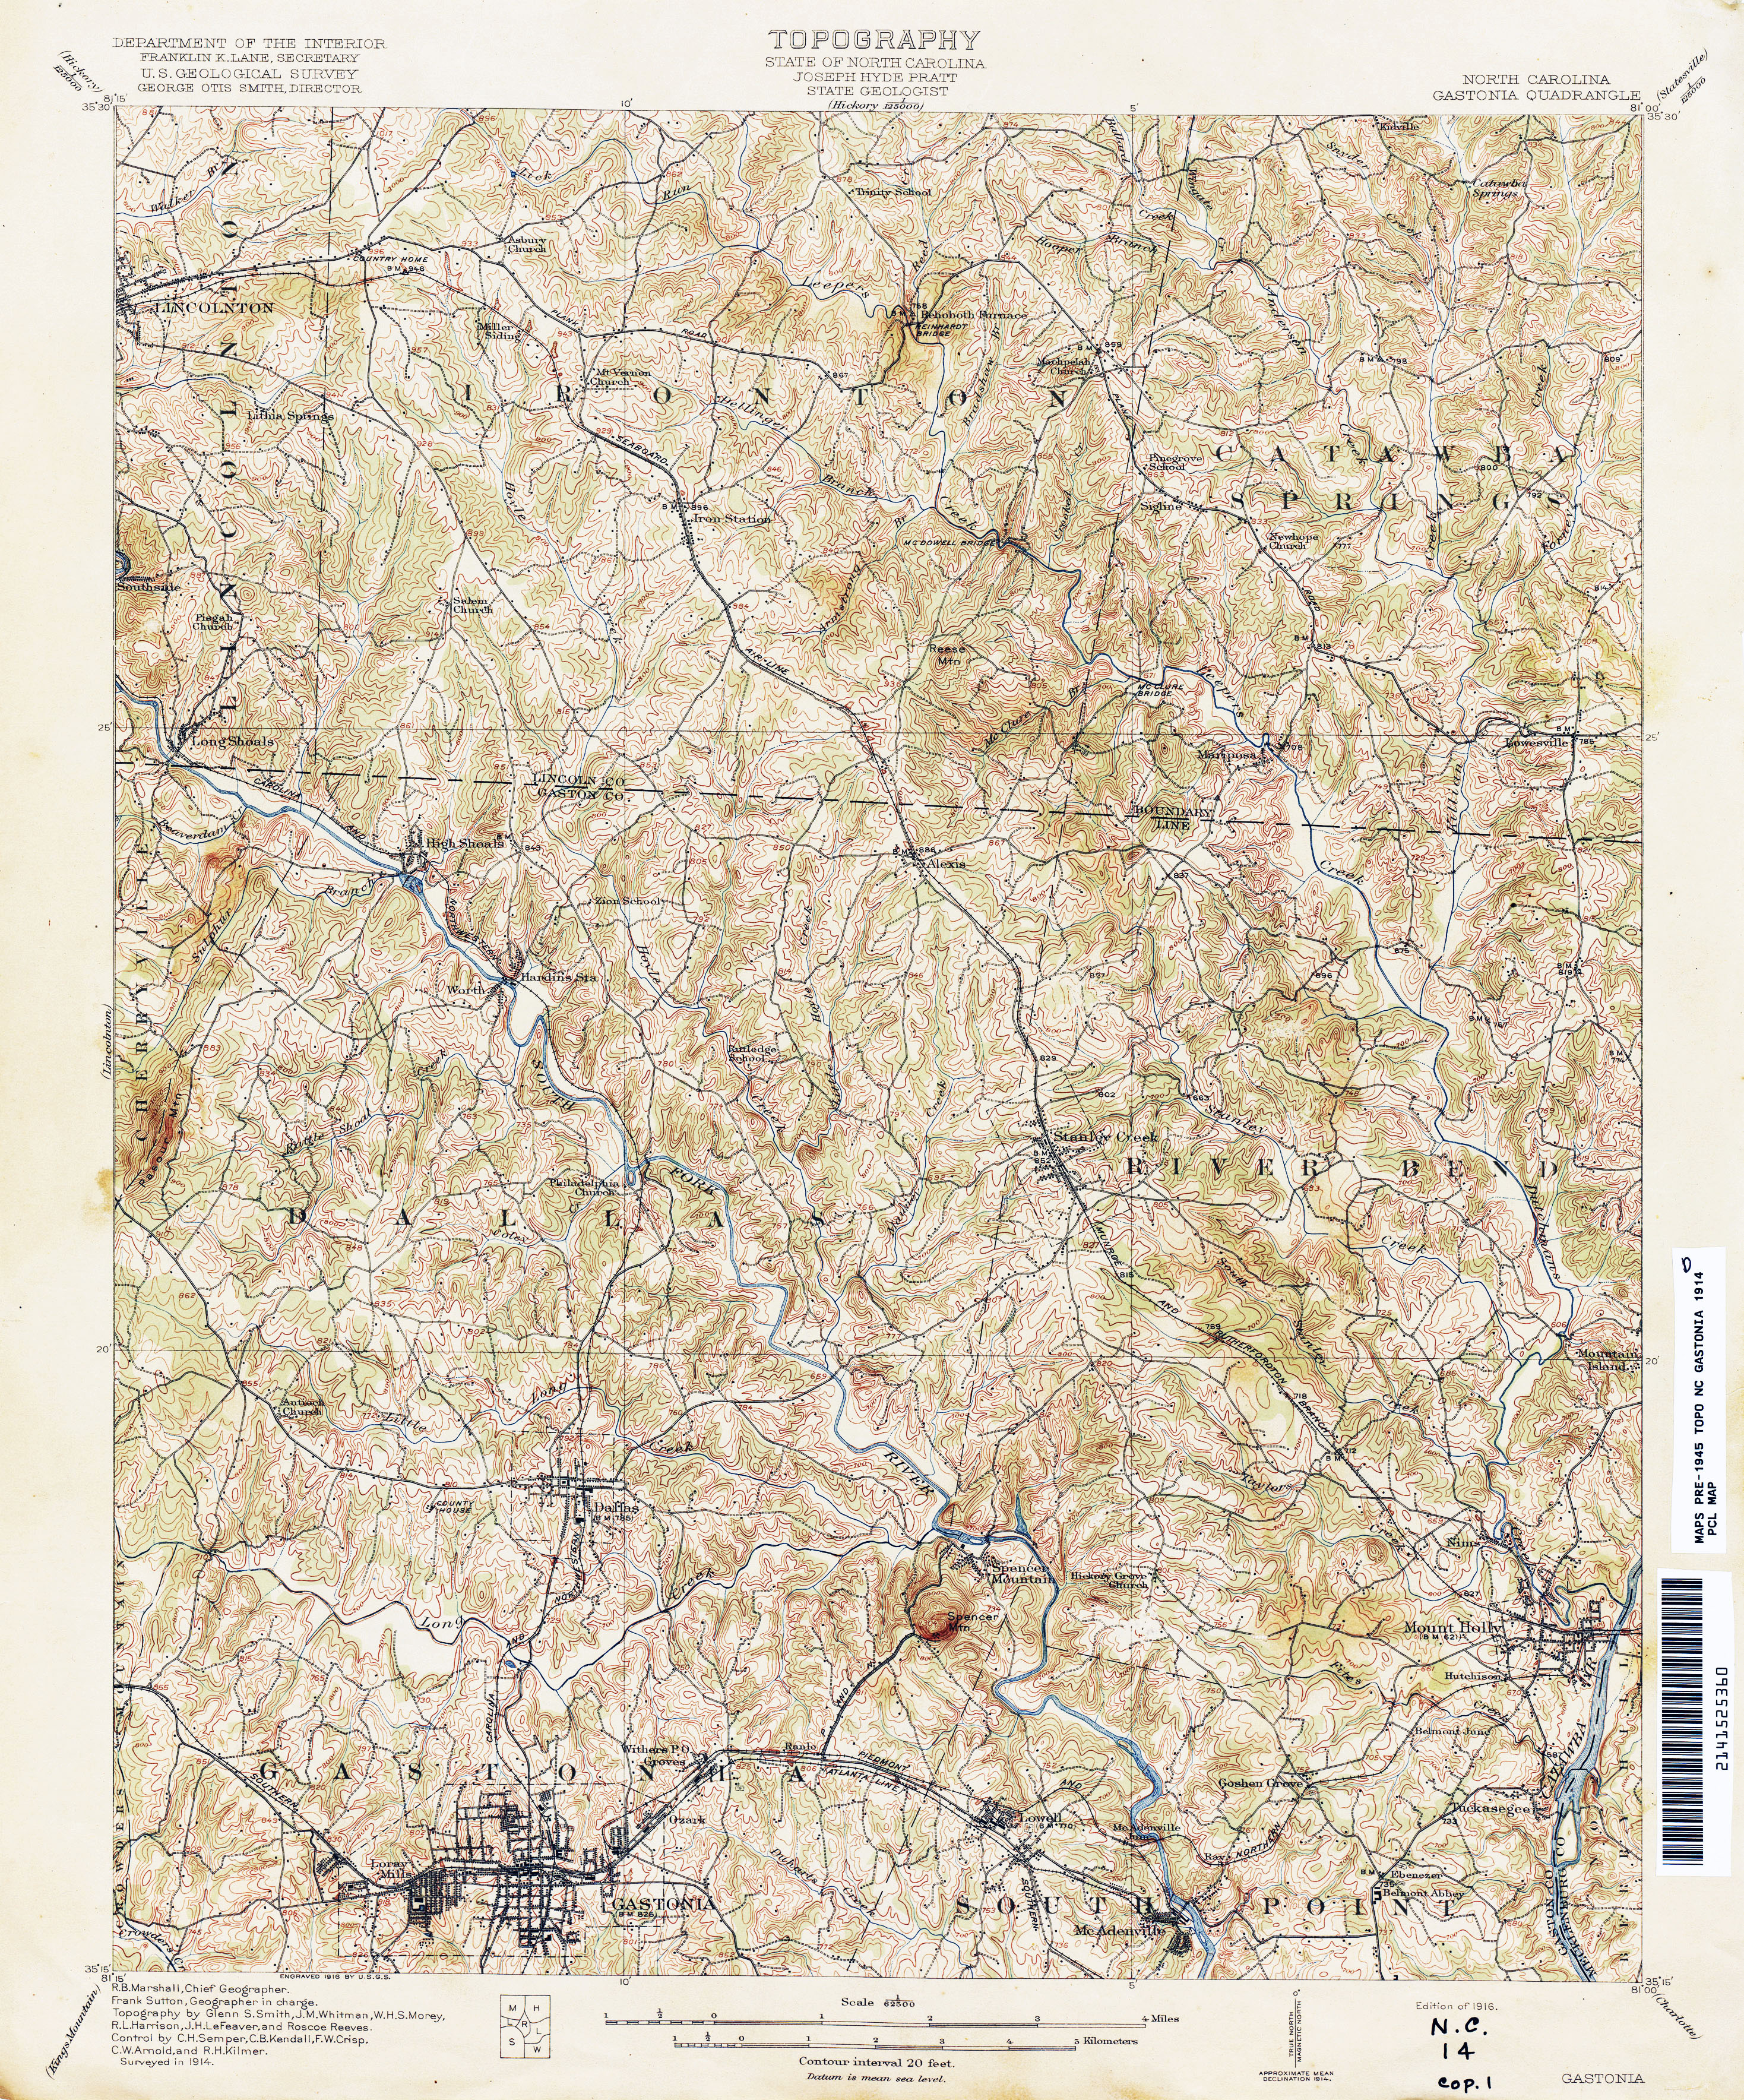 Gaston Nc Map.Topographic Maps Libguides At Gaston County Public Library